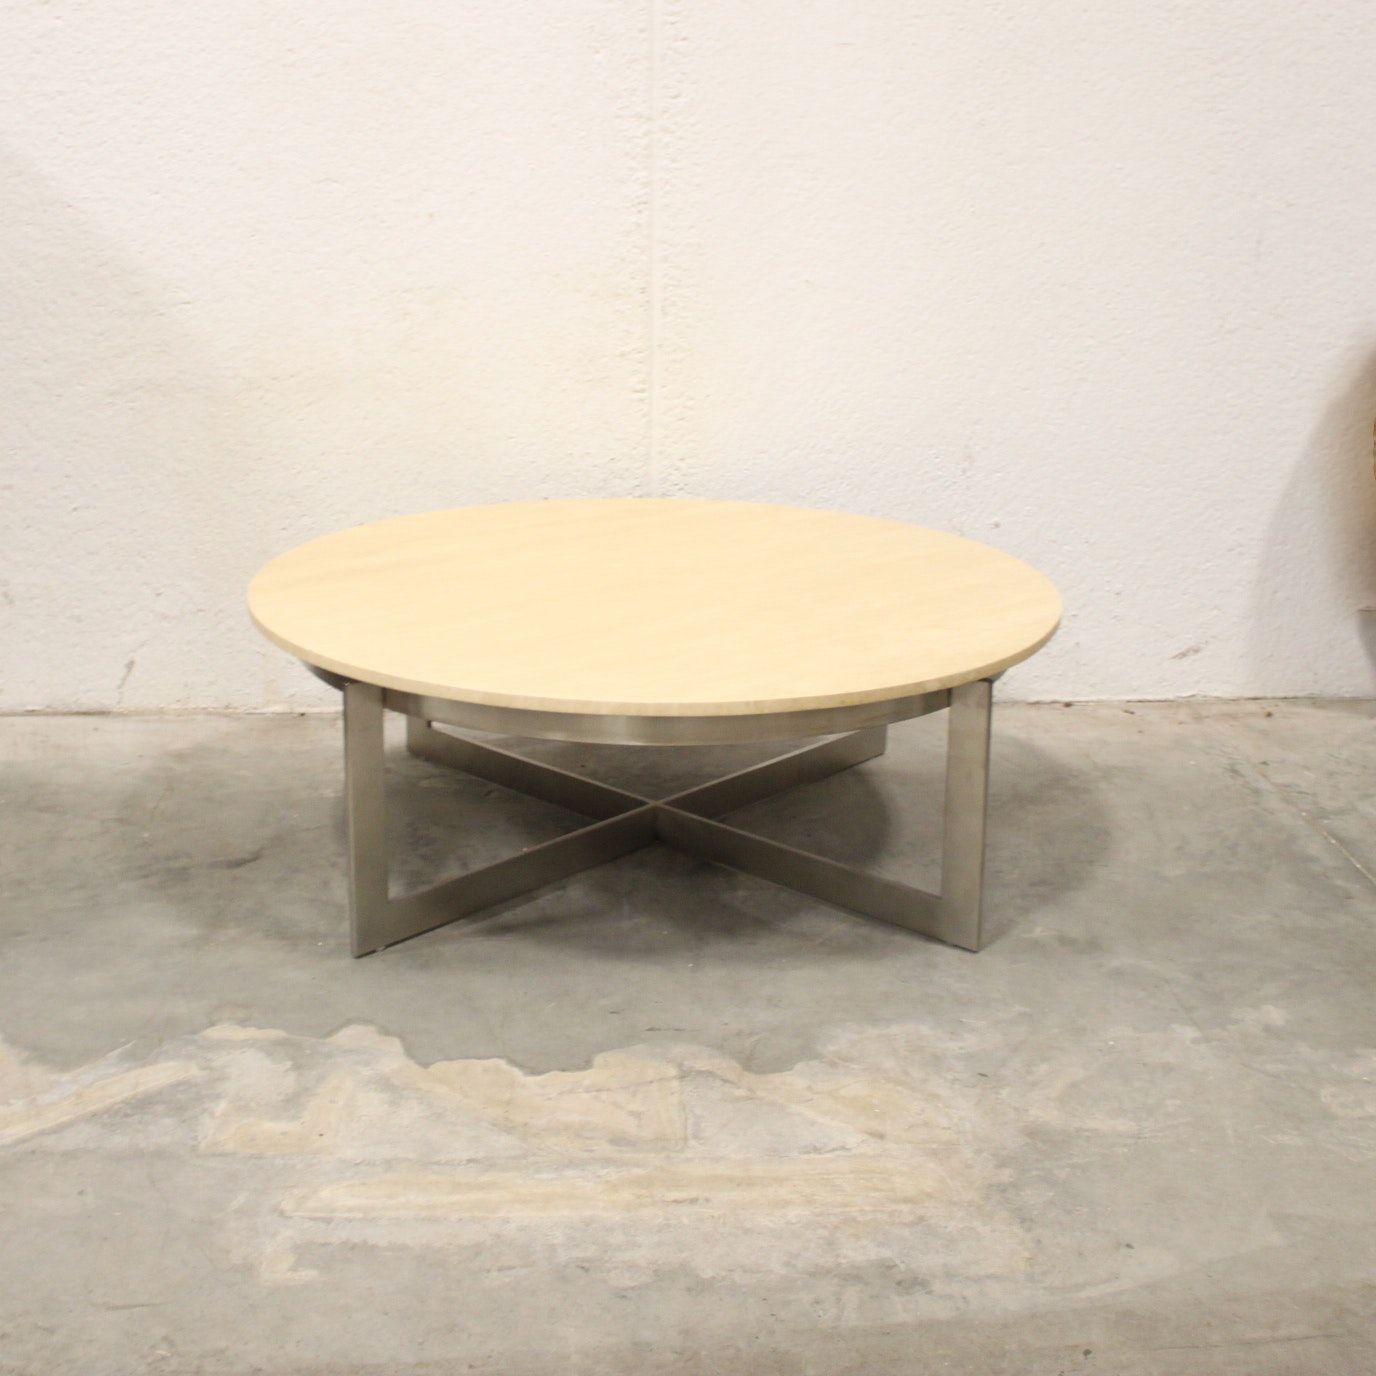 Modern Style Round Coffee Table with Metal Base